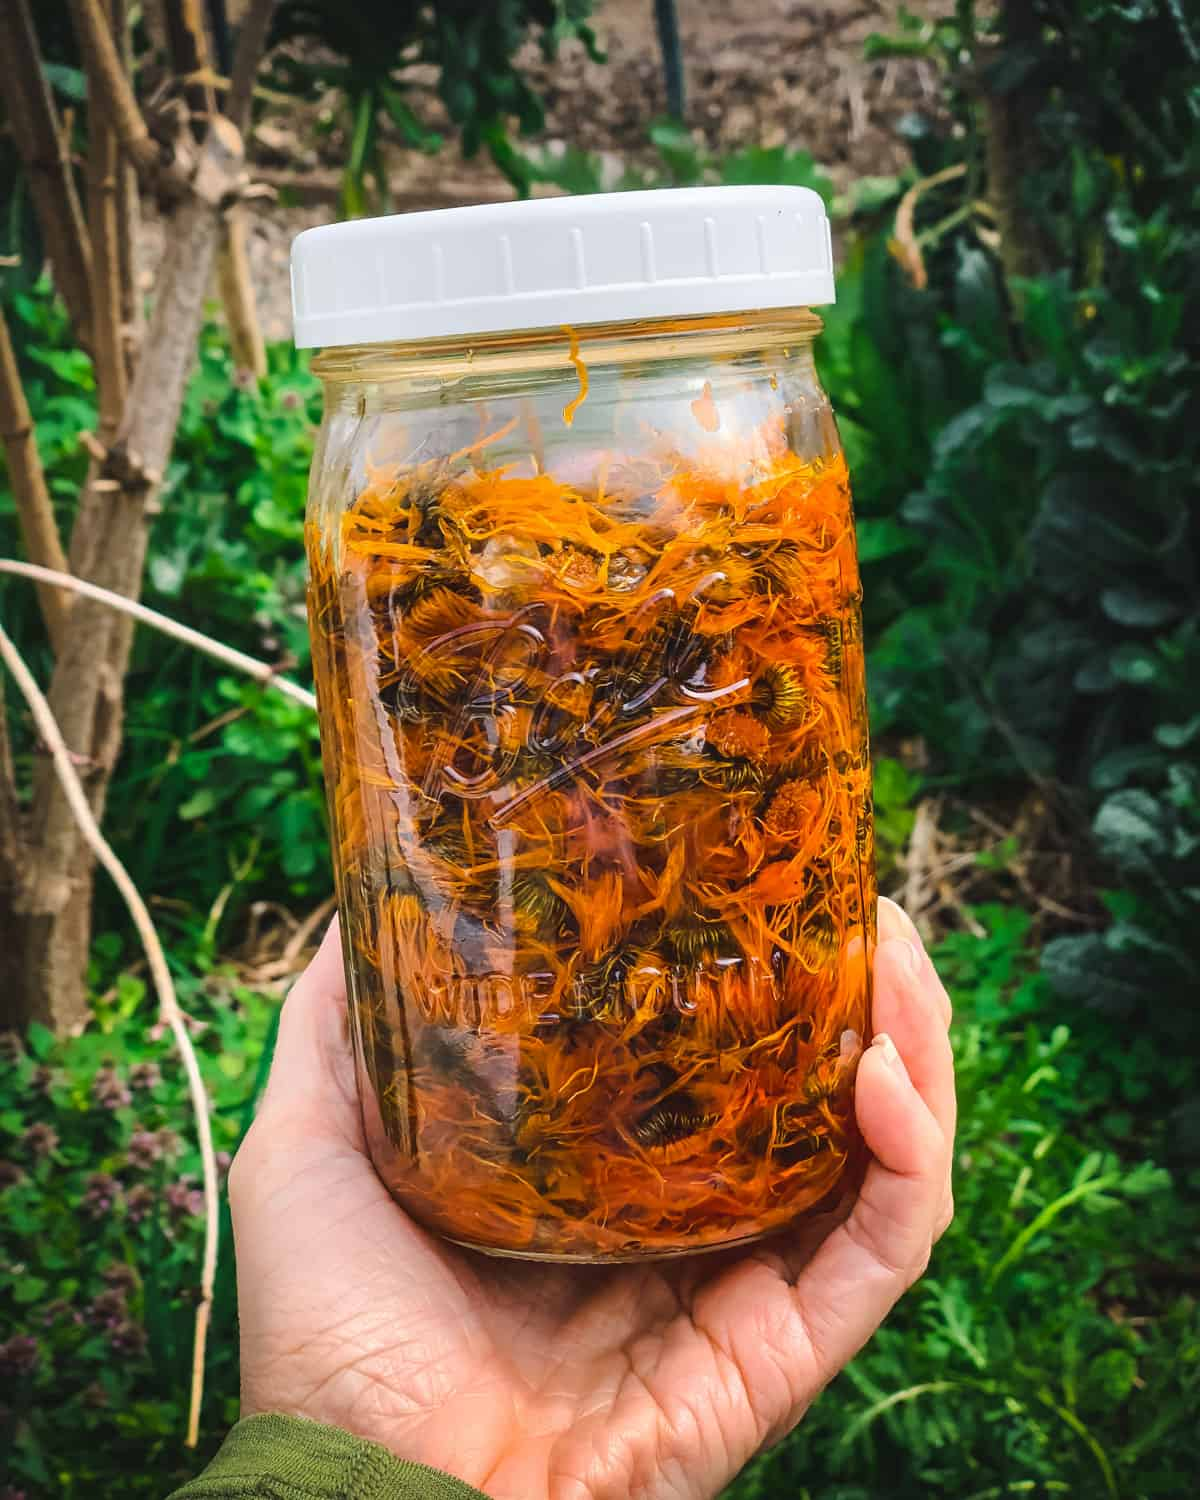 a hand holding a quart jar of calendula flowers infusing in oil